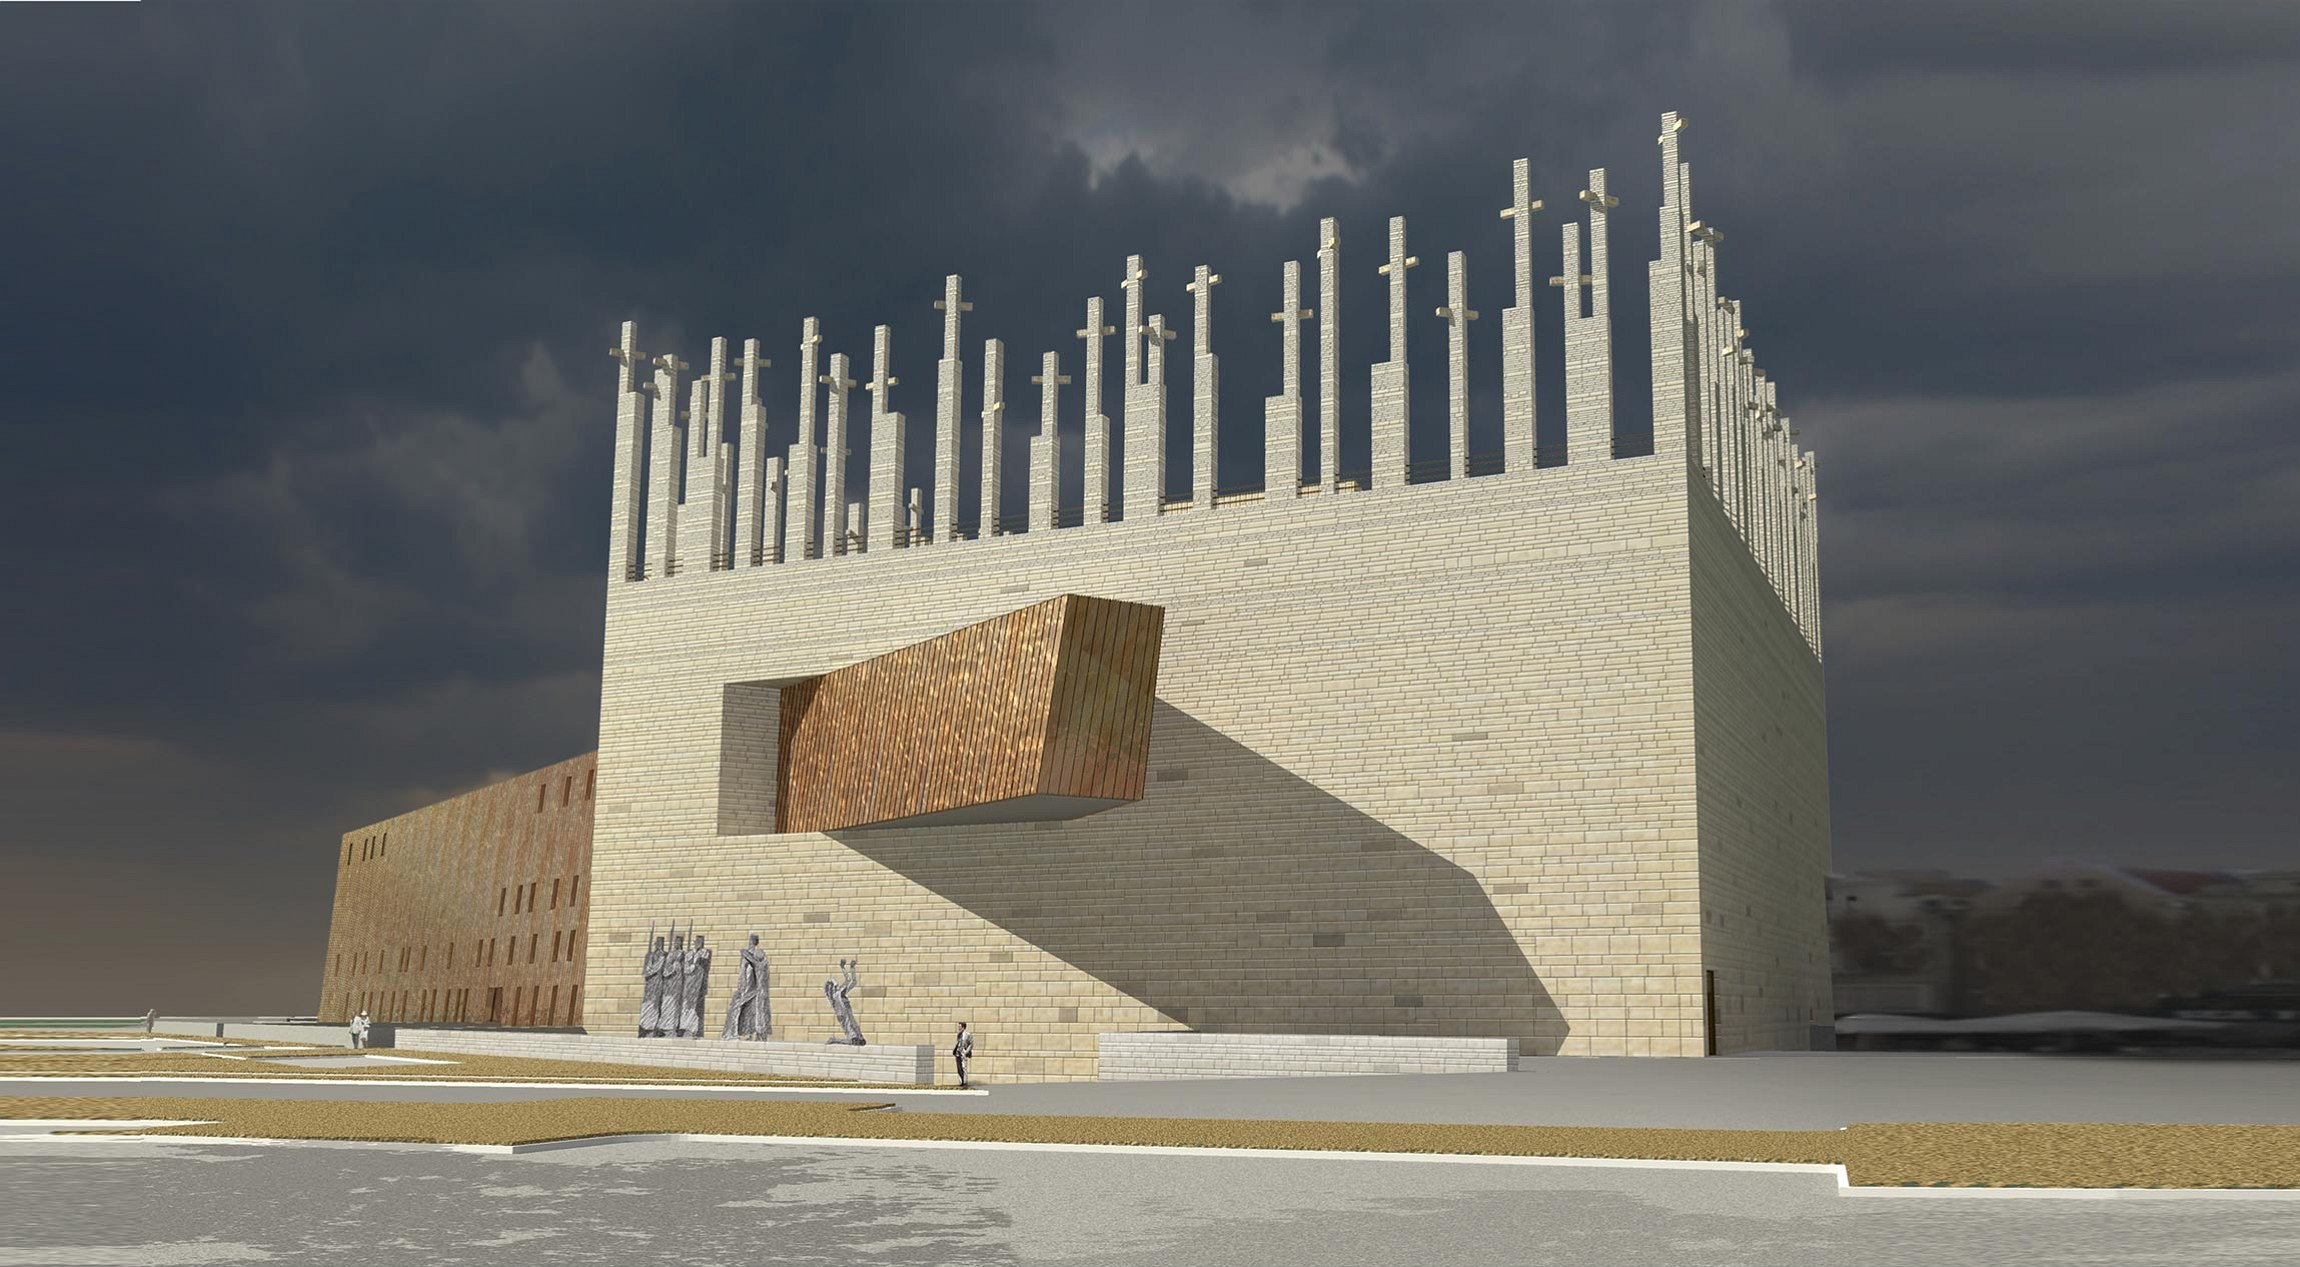 World War II museum in Gdansk  Contest project  Concept